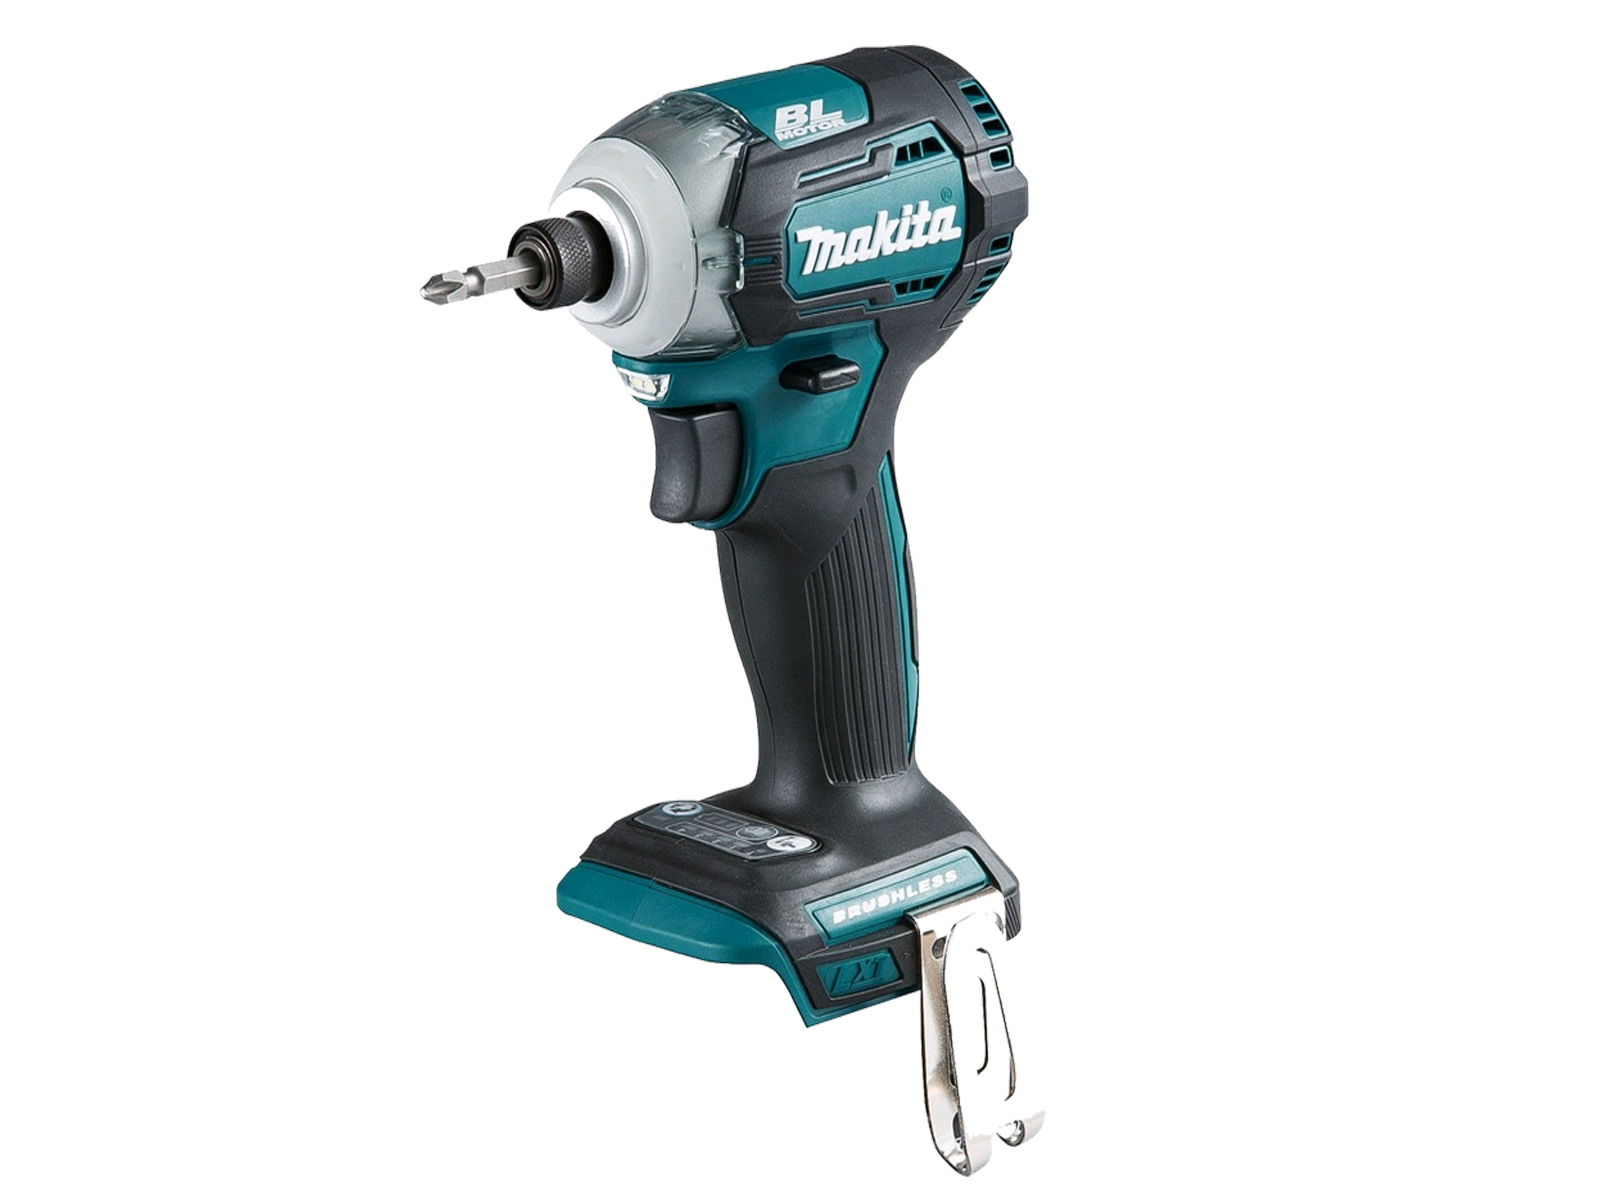 MAKITA 18V BRUSHLESS MULTI-MODE IMPACT DRIVER - DTD170 - BODY ONLY